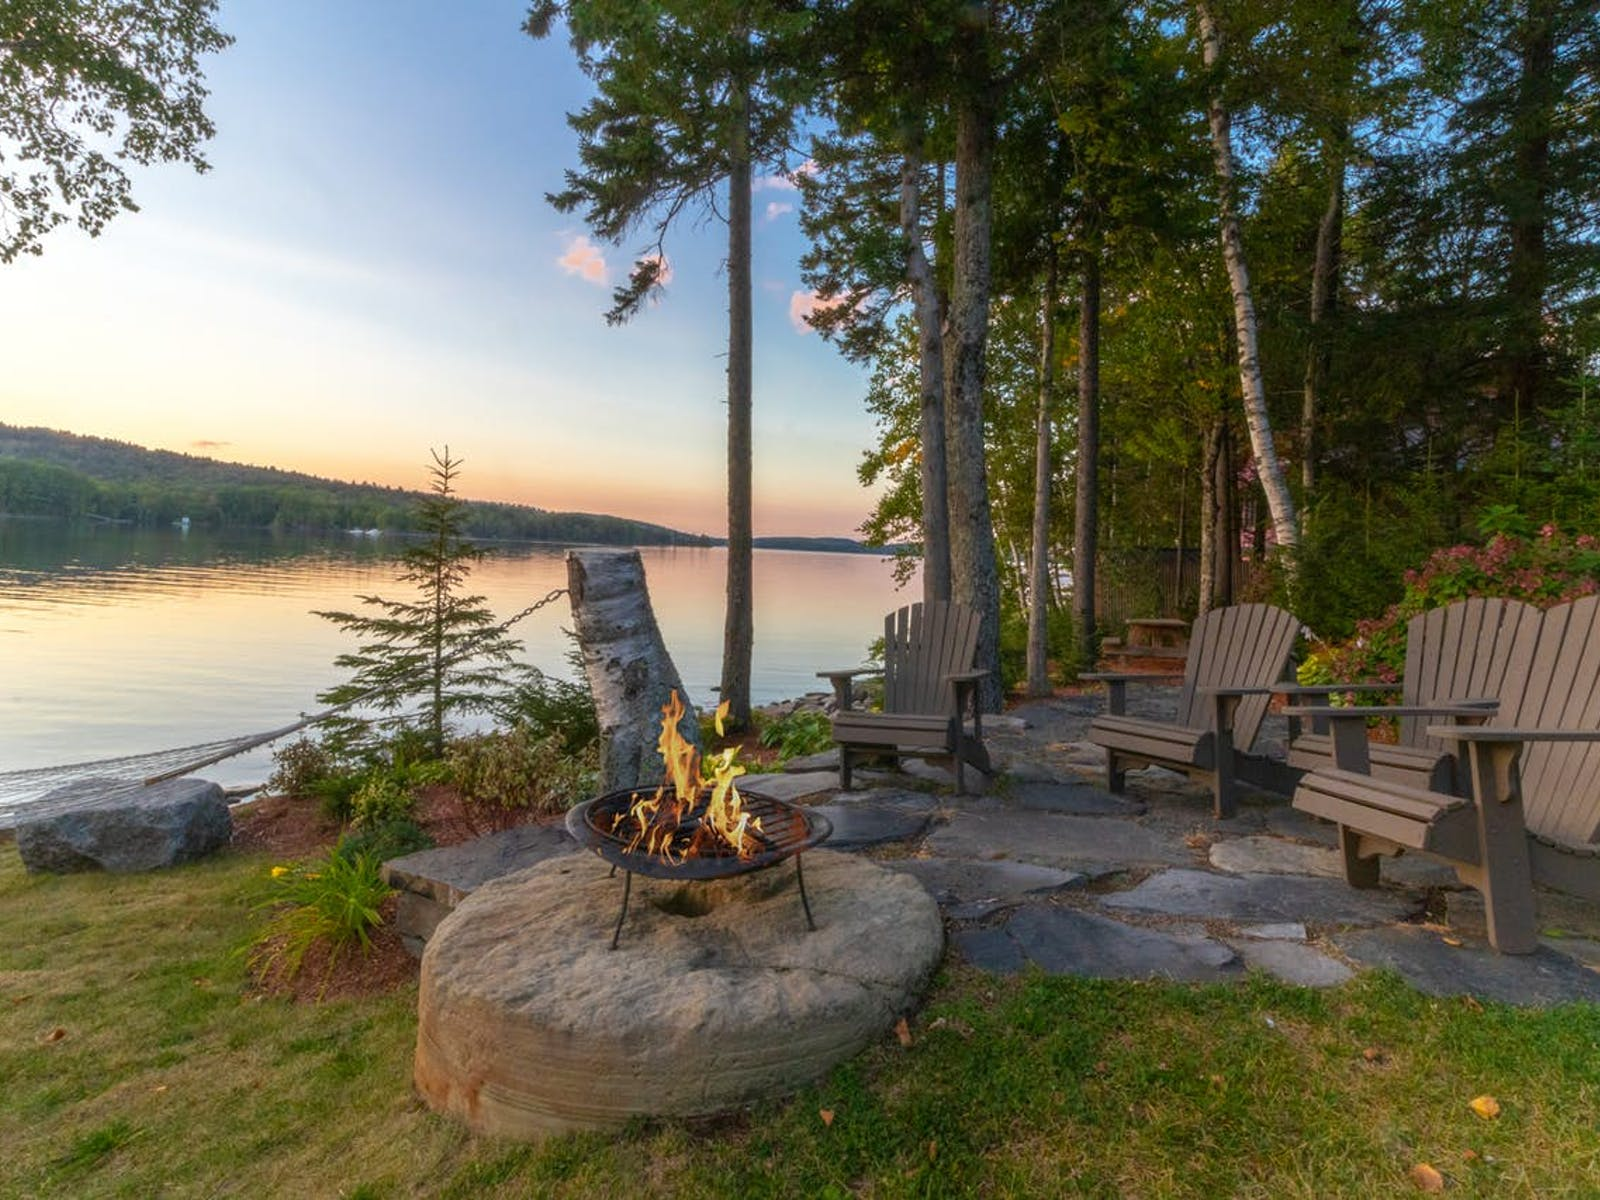 Lakefront vacation rental fire-pit with hammock and seating